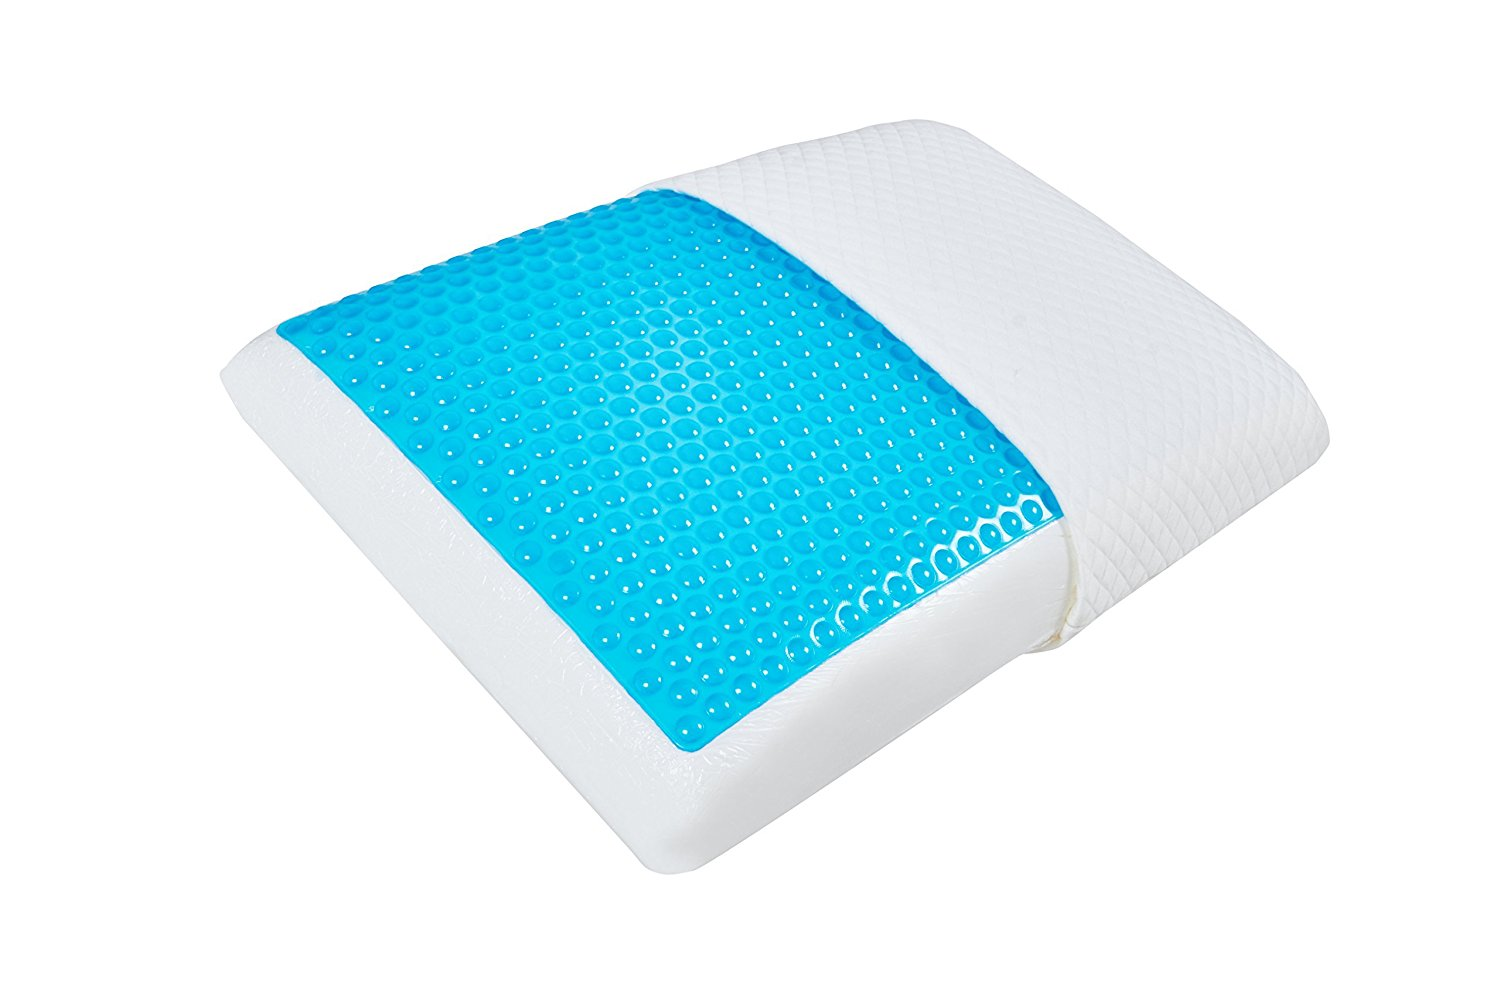 Acanva Memory Foam Pillow with Cooling Gel and Natural